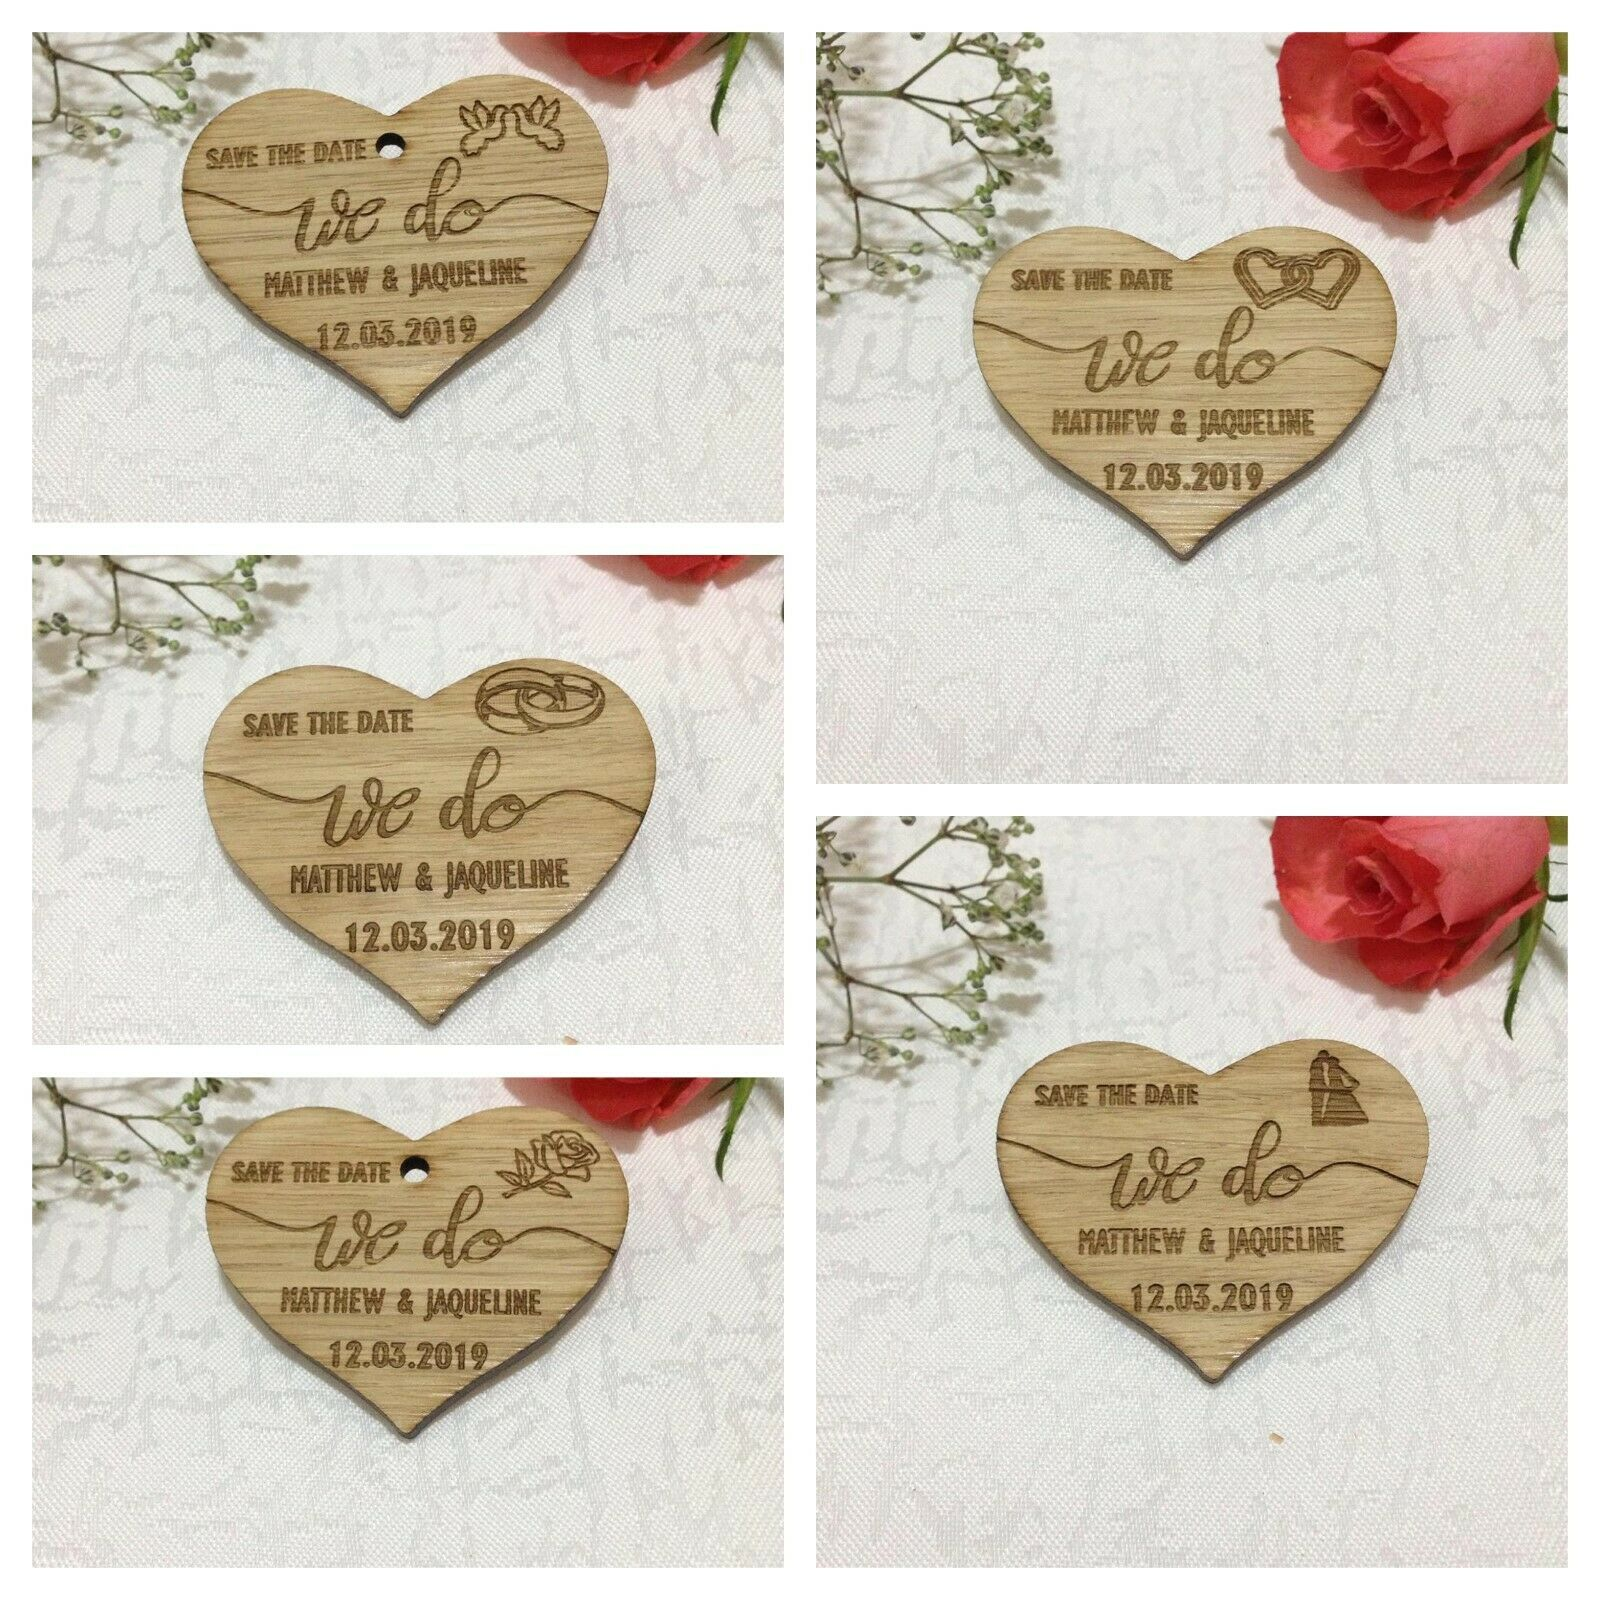 Save the Date Magnet Wedding Favors Hearts Thank You Card, We Do Template Invite